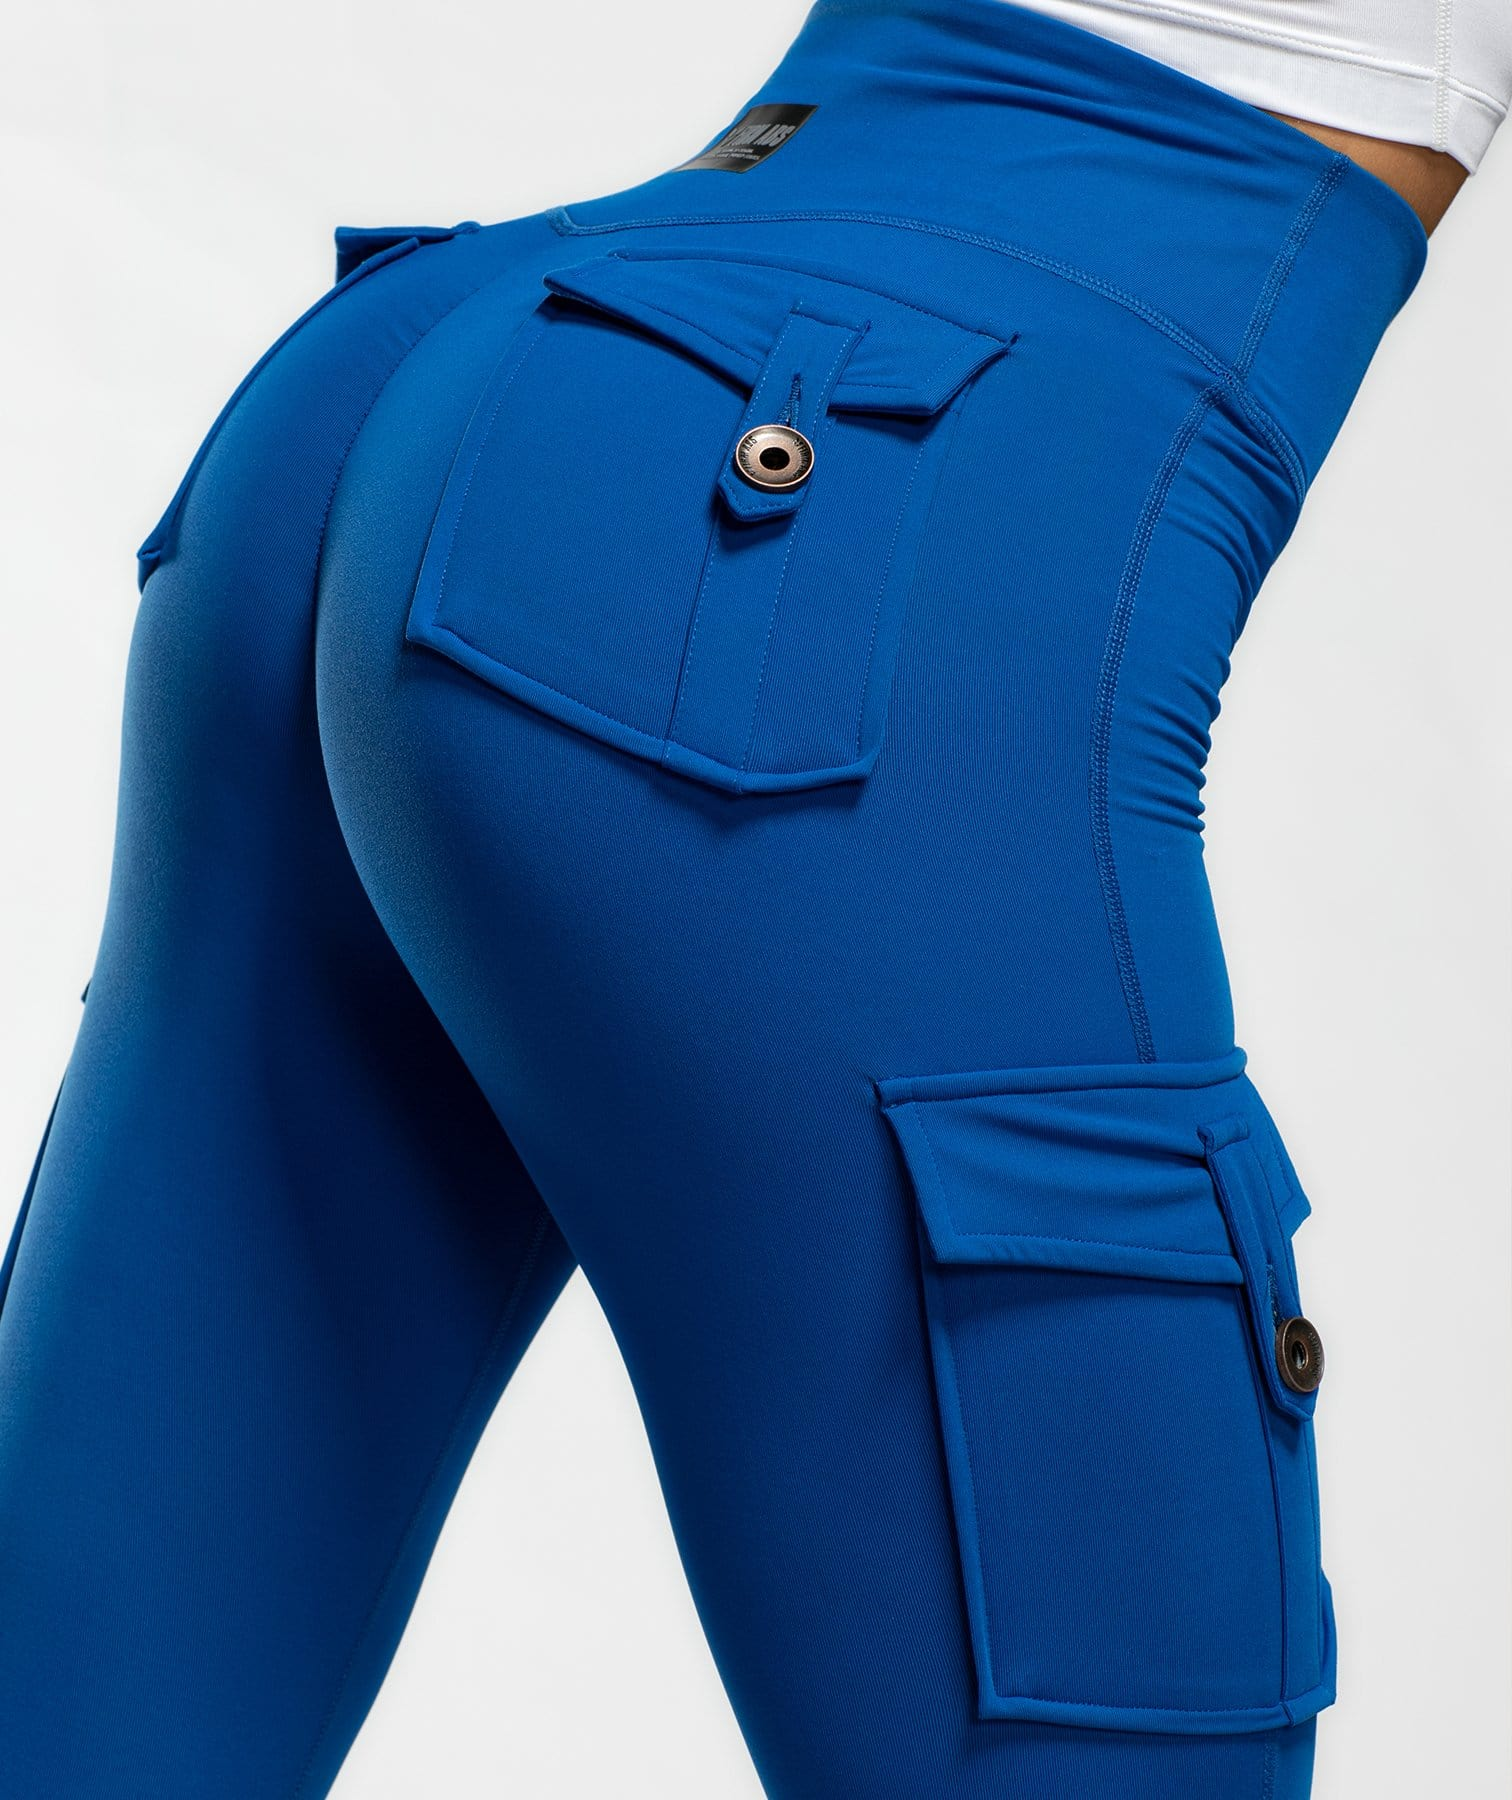 Cargo Ankle Length Leggings - Blue - Firm Abs Fitness